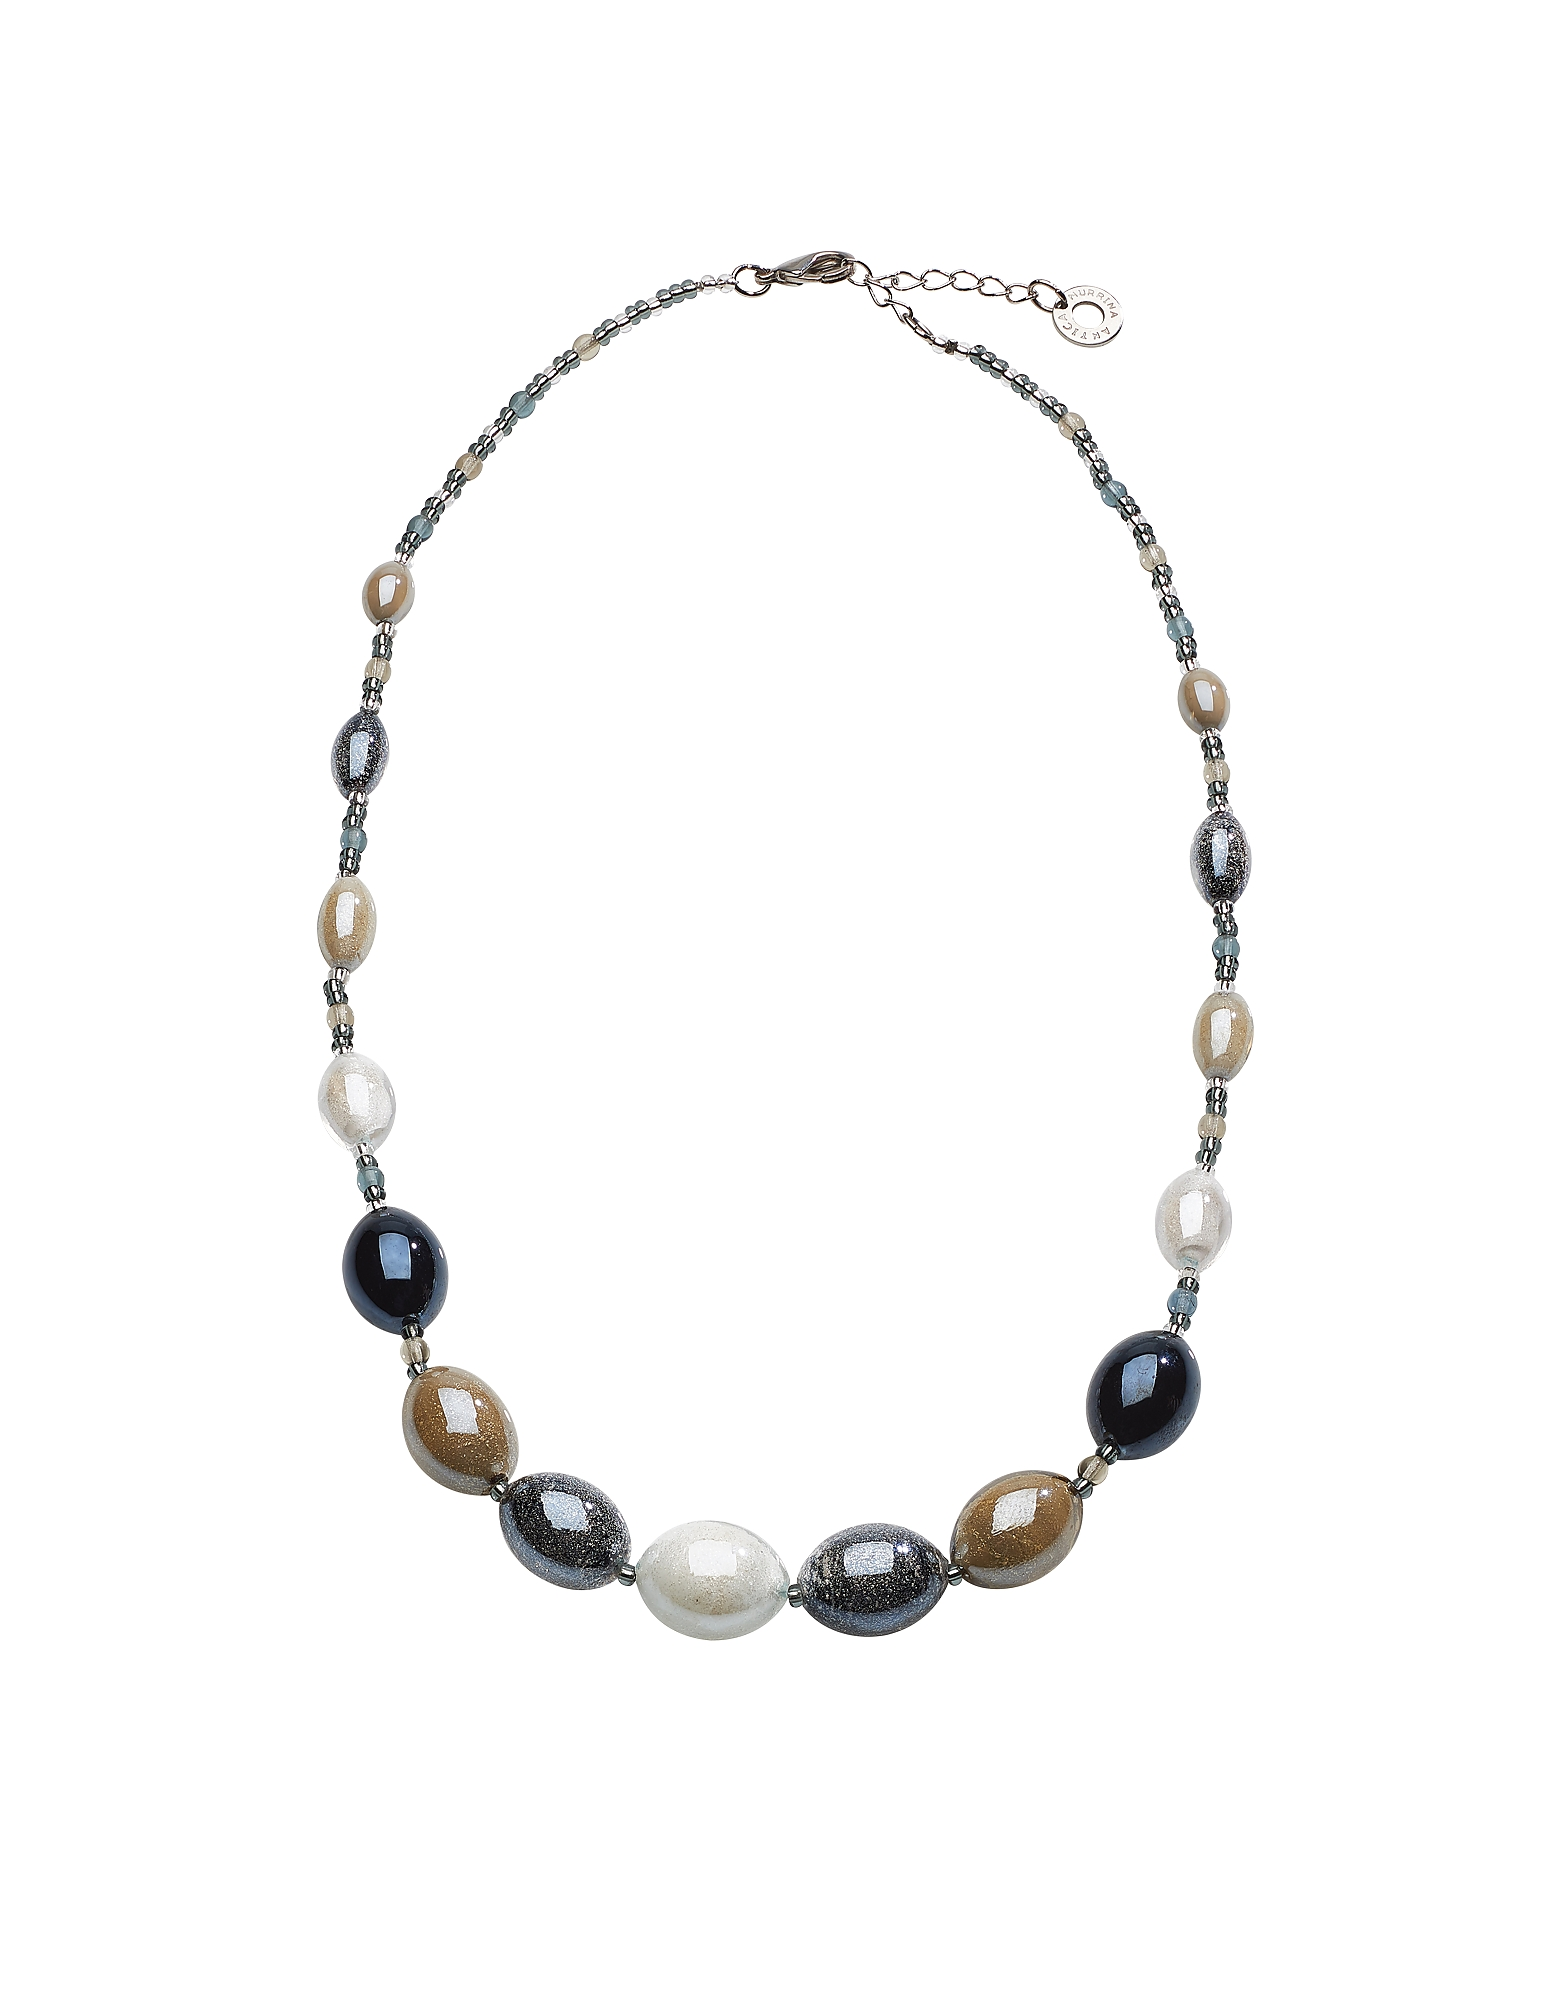 Antica Murrina Necklaces, Rezzonico Necklace